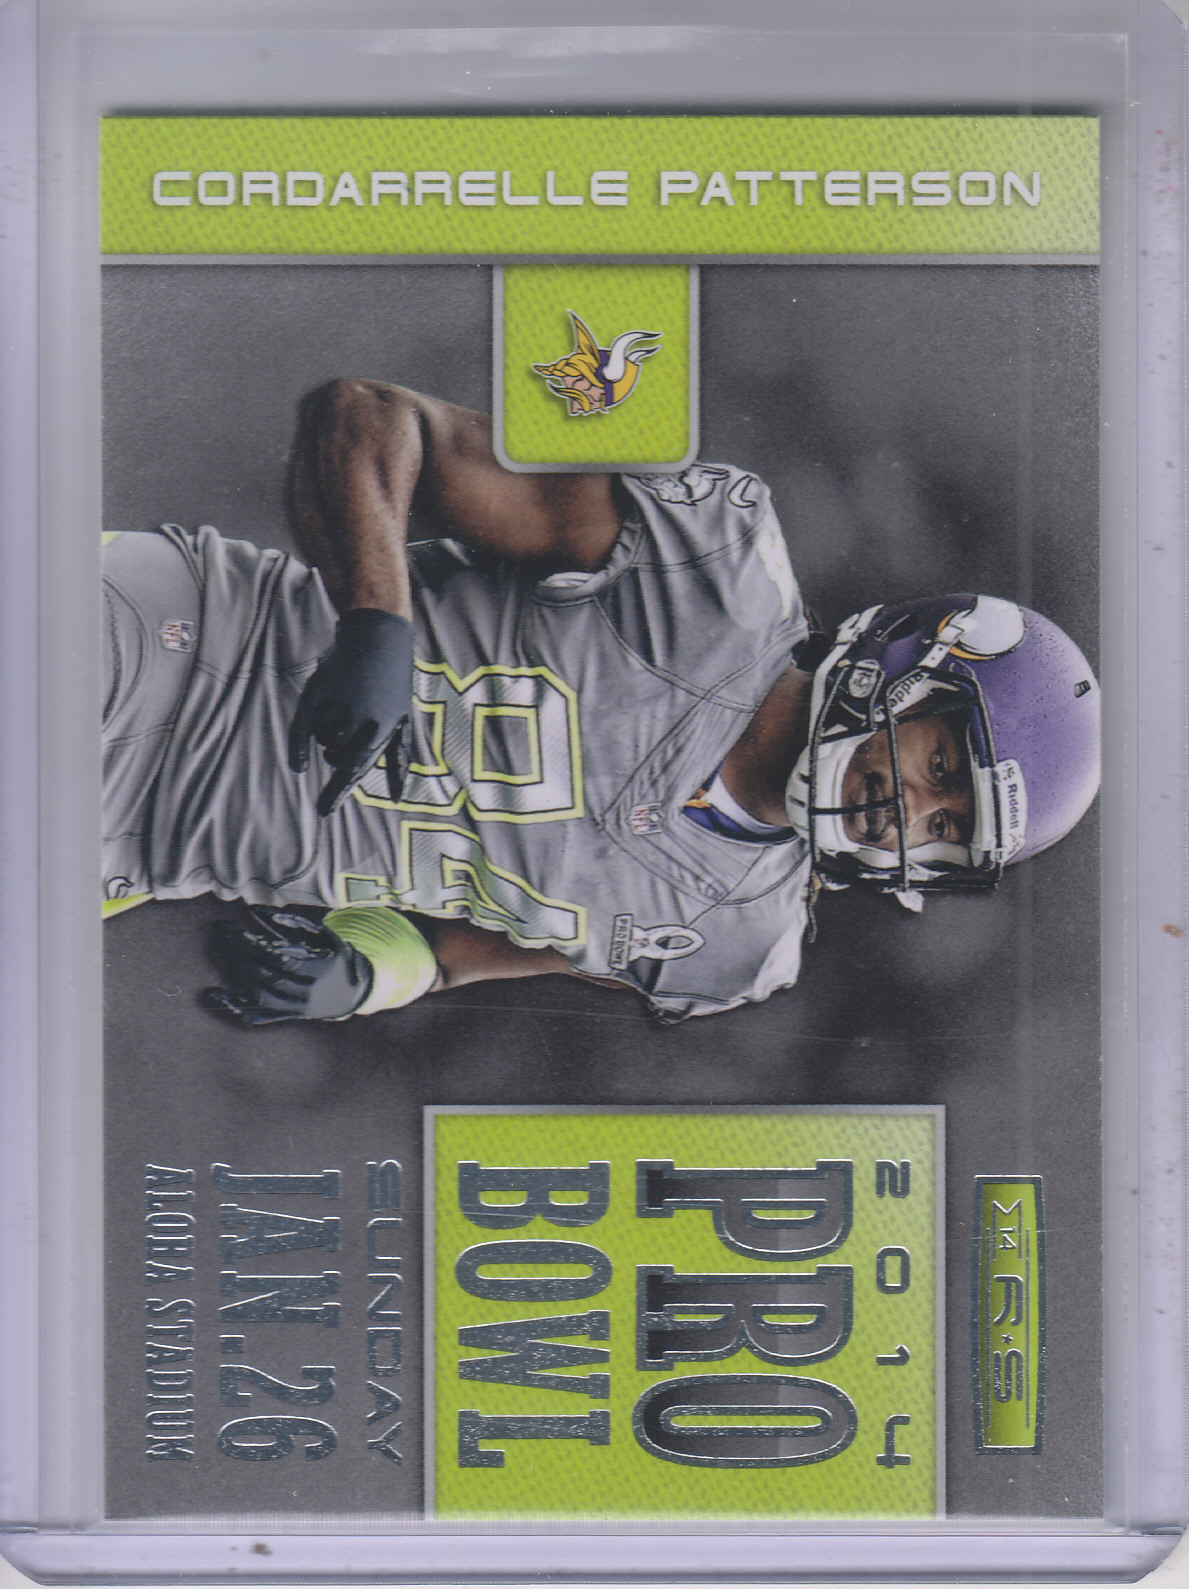 2014 Rookies and Stars Pro Bowl #25 Cordarrelle Patterson